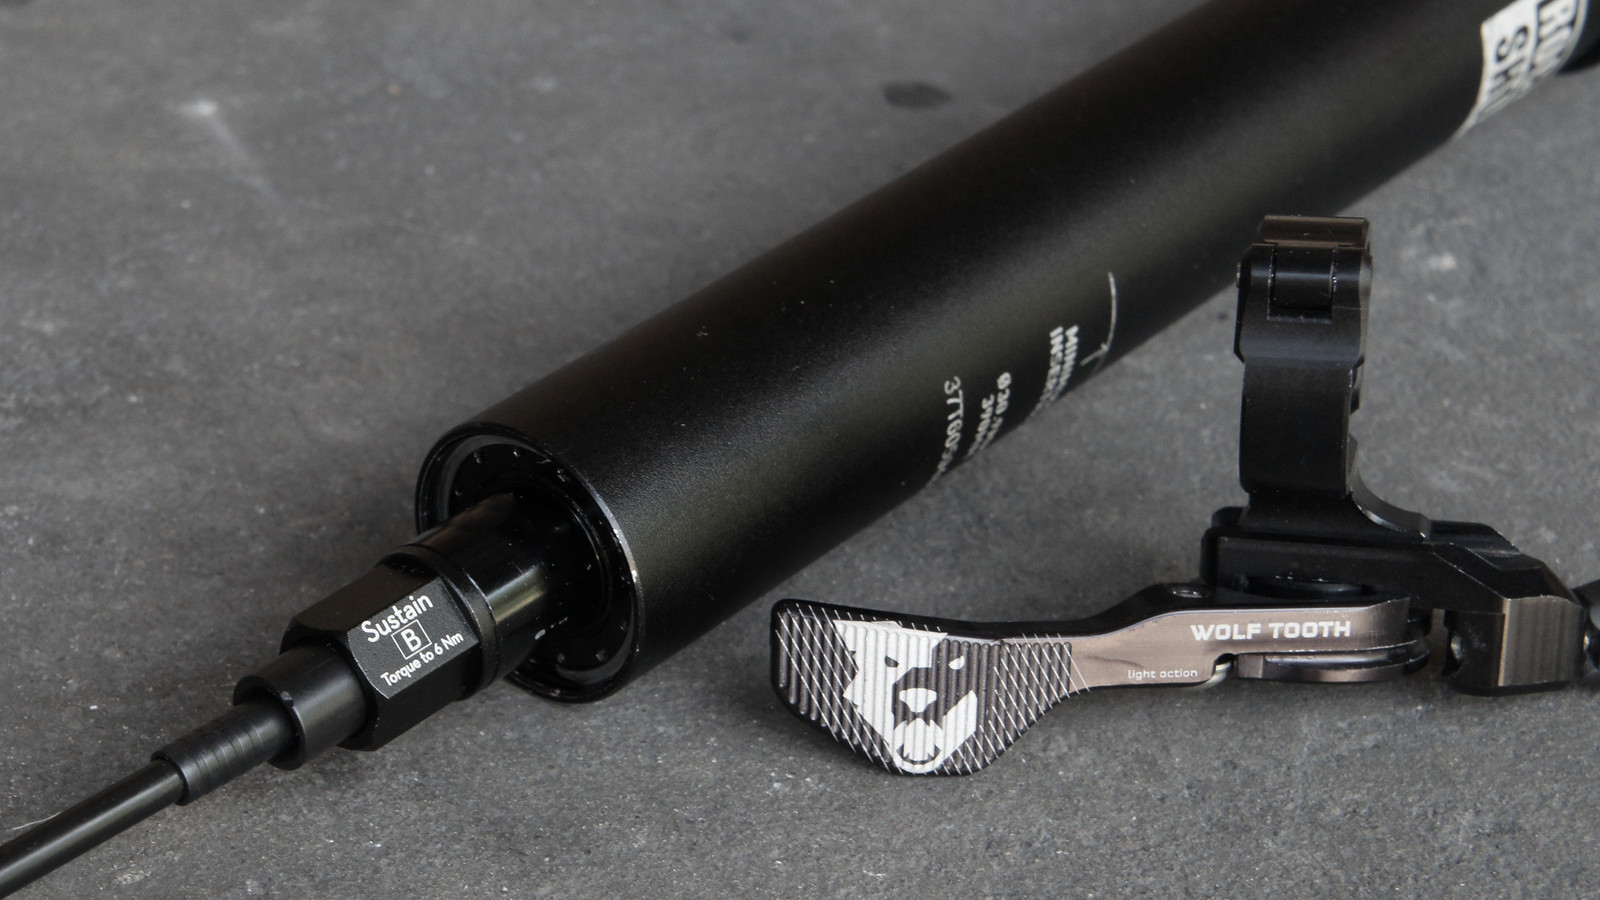 Wolf Tooth's ReMote Sustain is a Cable-Actuated Lever for RockShox Reverb Dropper Posts